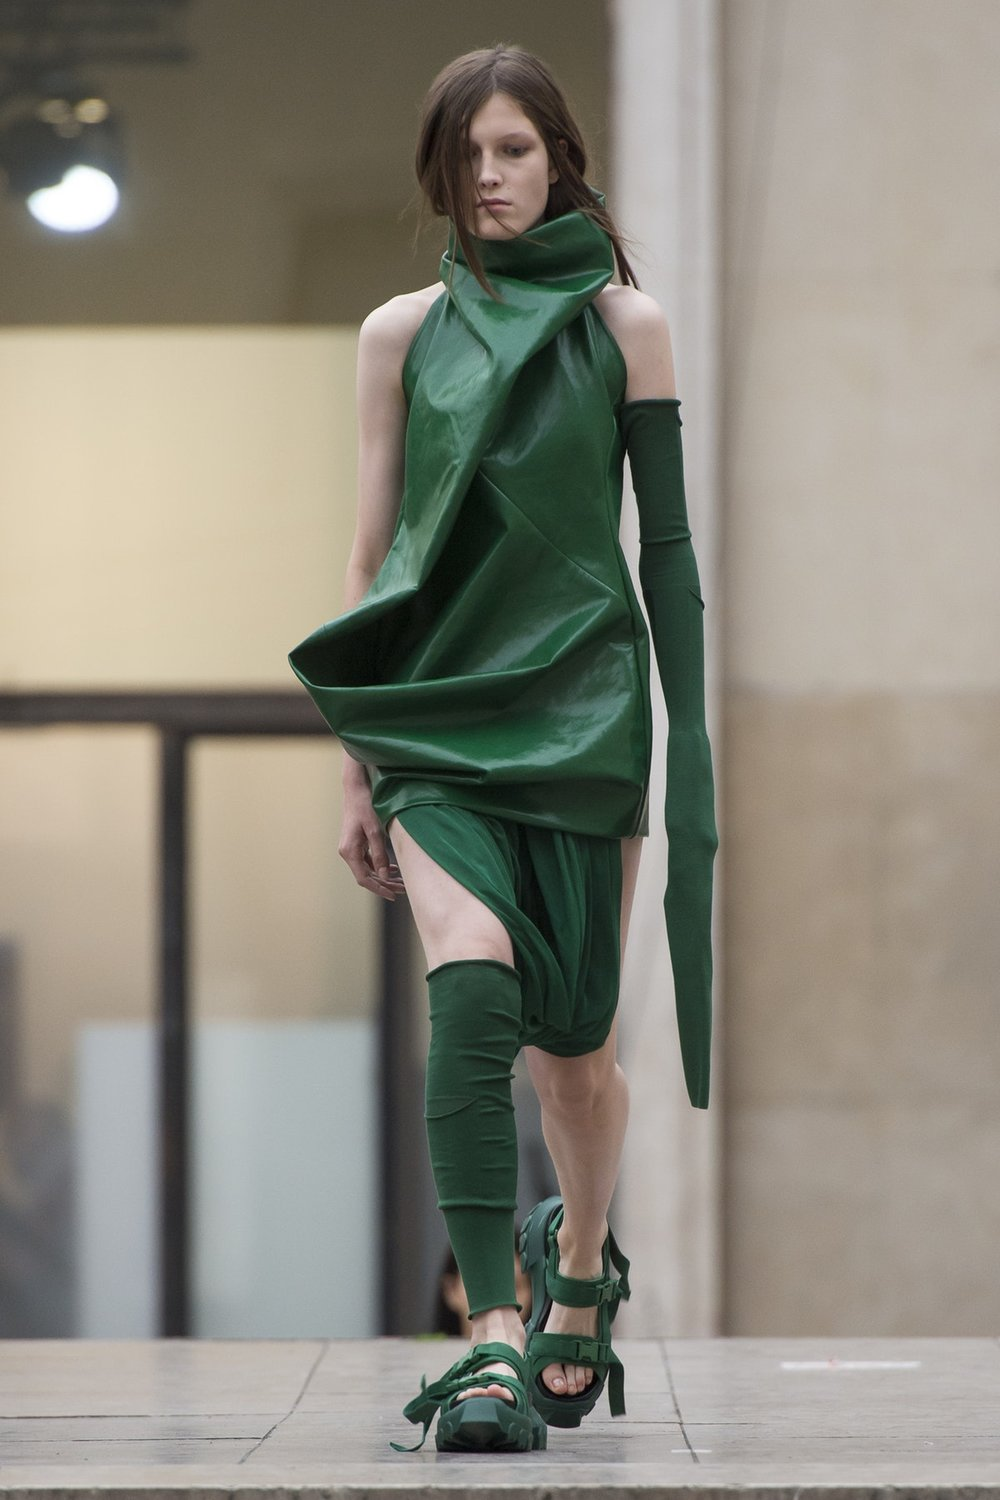 Rick Owens Ready-To-Wear Spring 2018, image via The Business Of Fashion